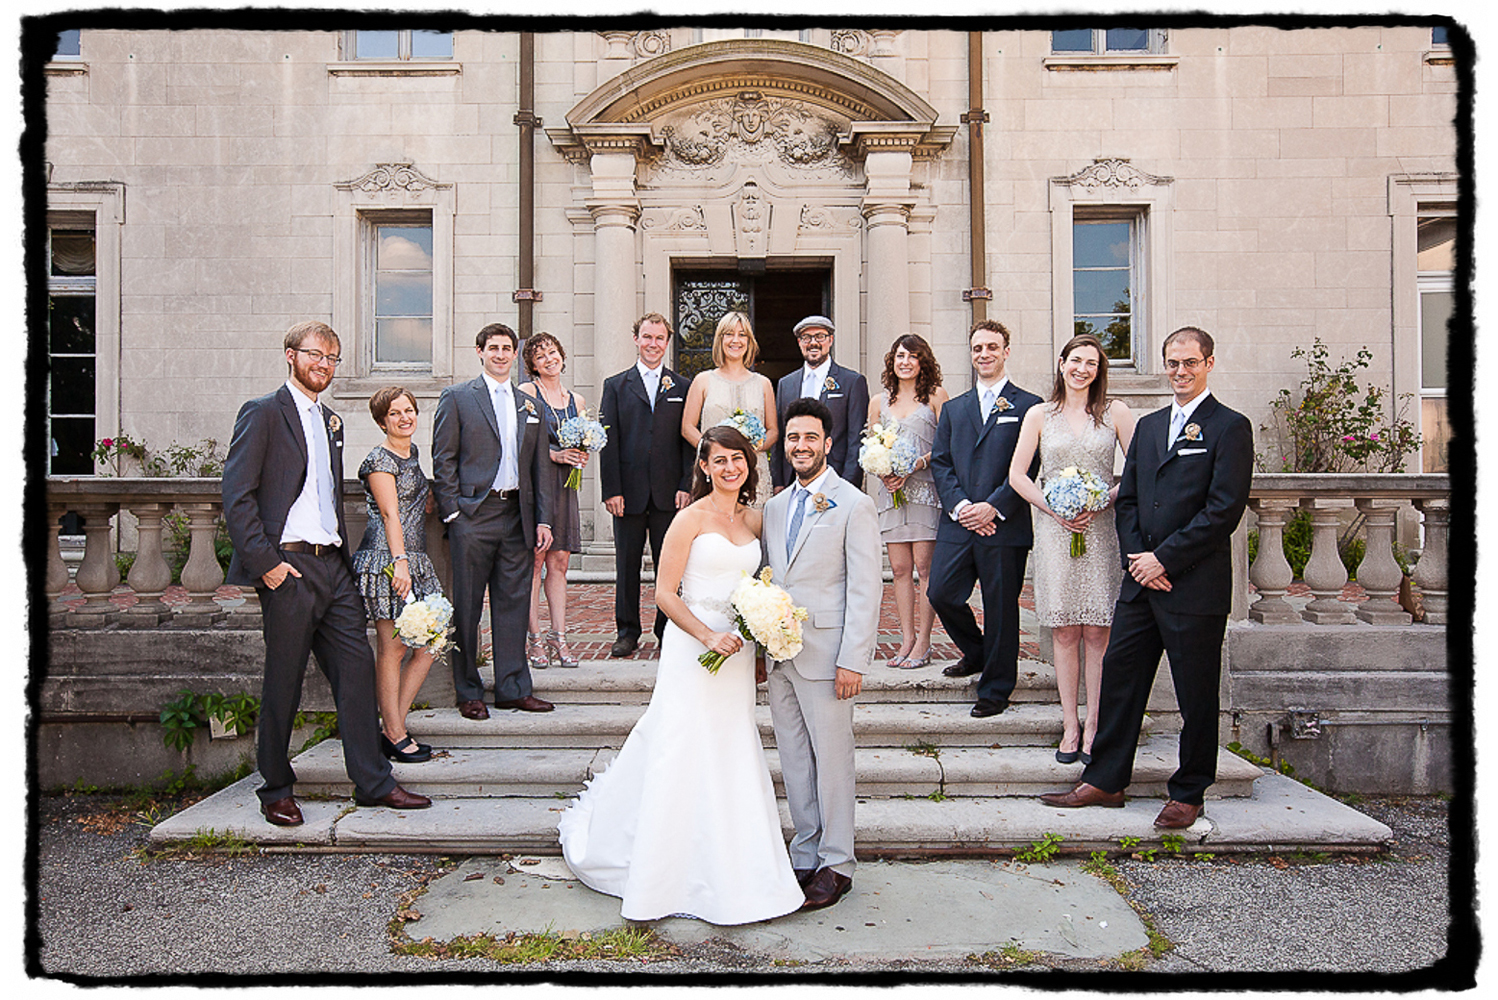 Tracey & Ben and their bridesmaids and groomsmen on the front stairs outside of Alder Manor in Westchester NY.